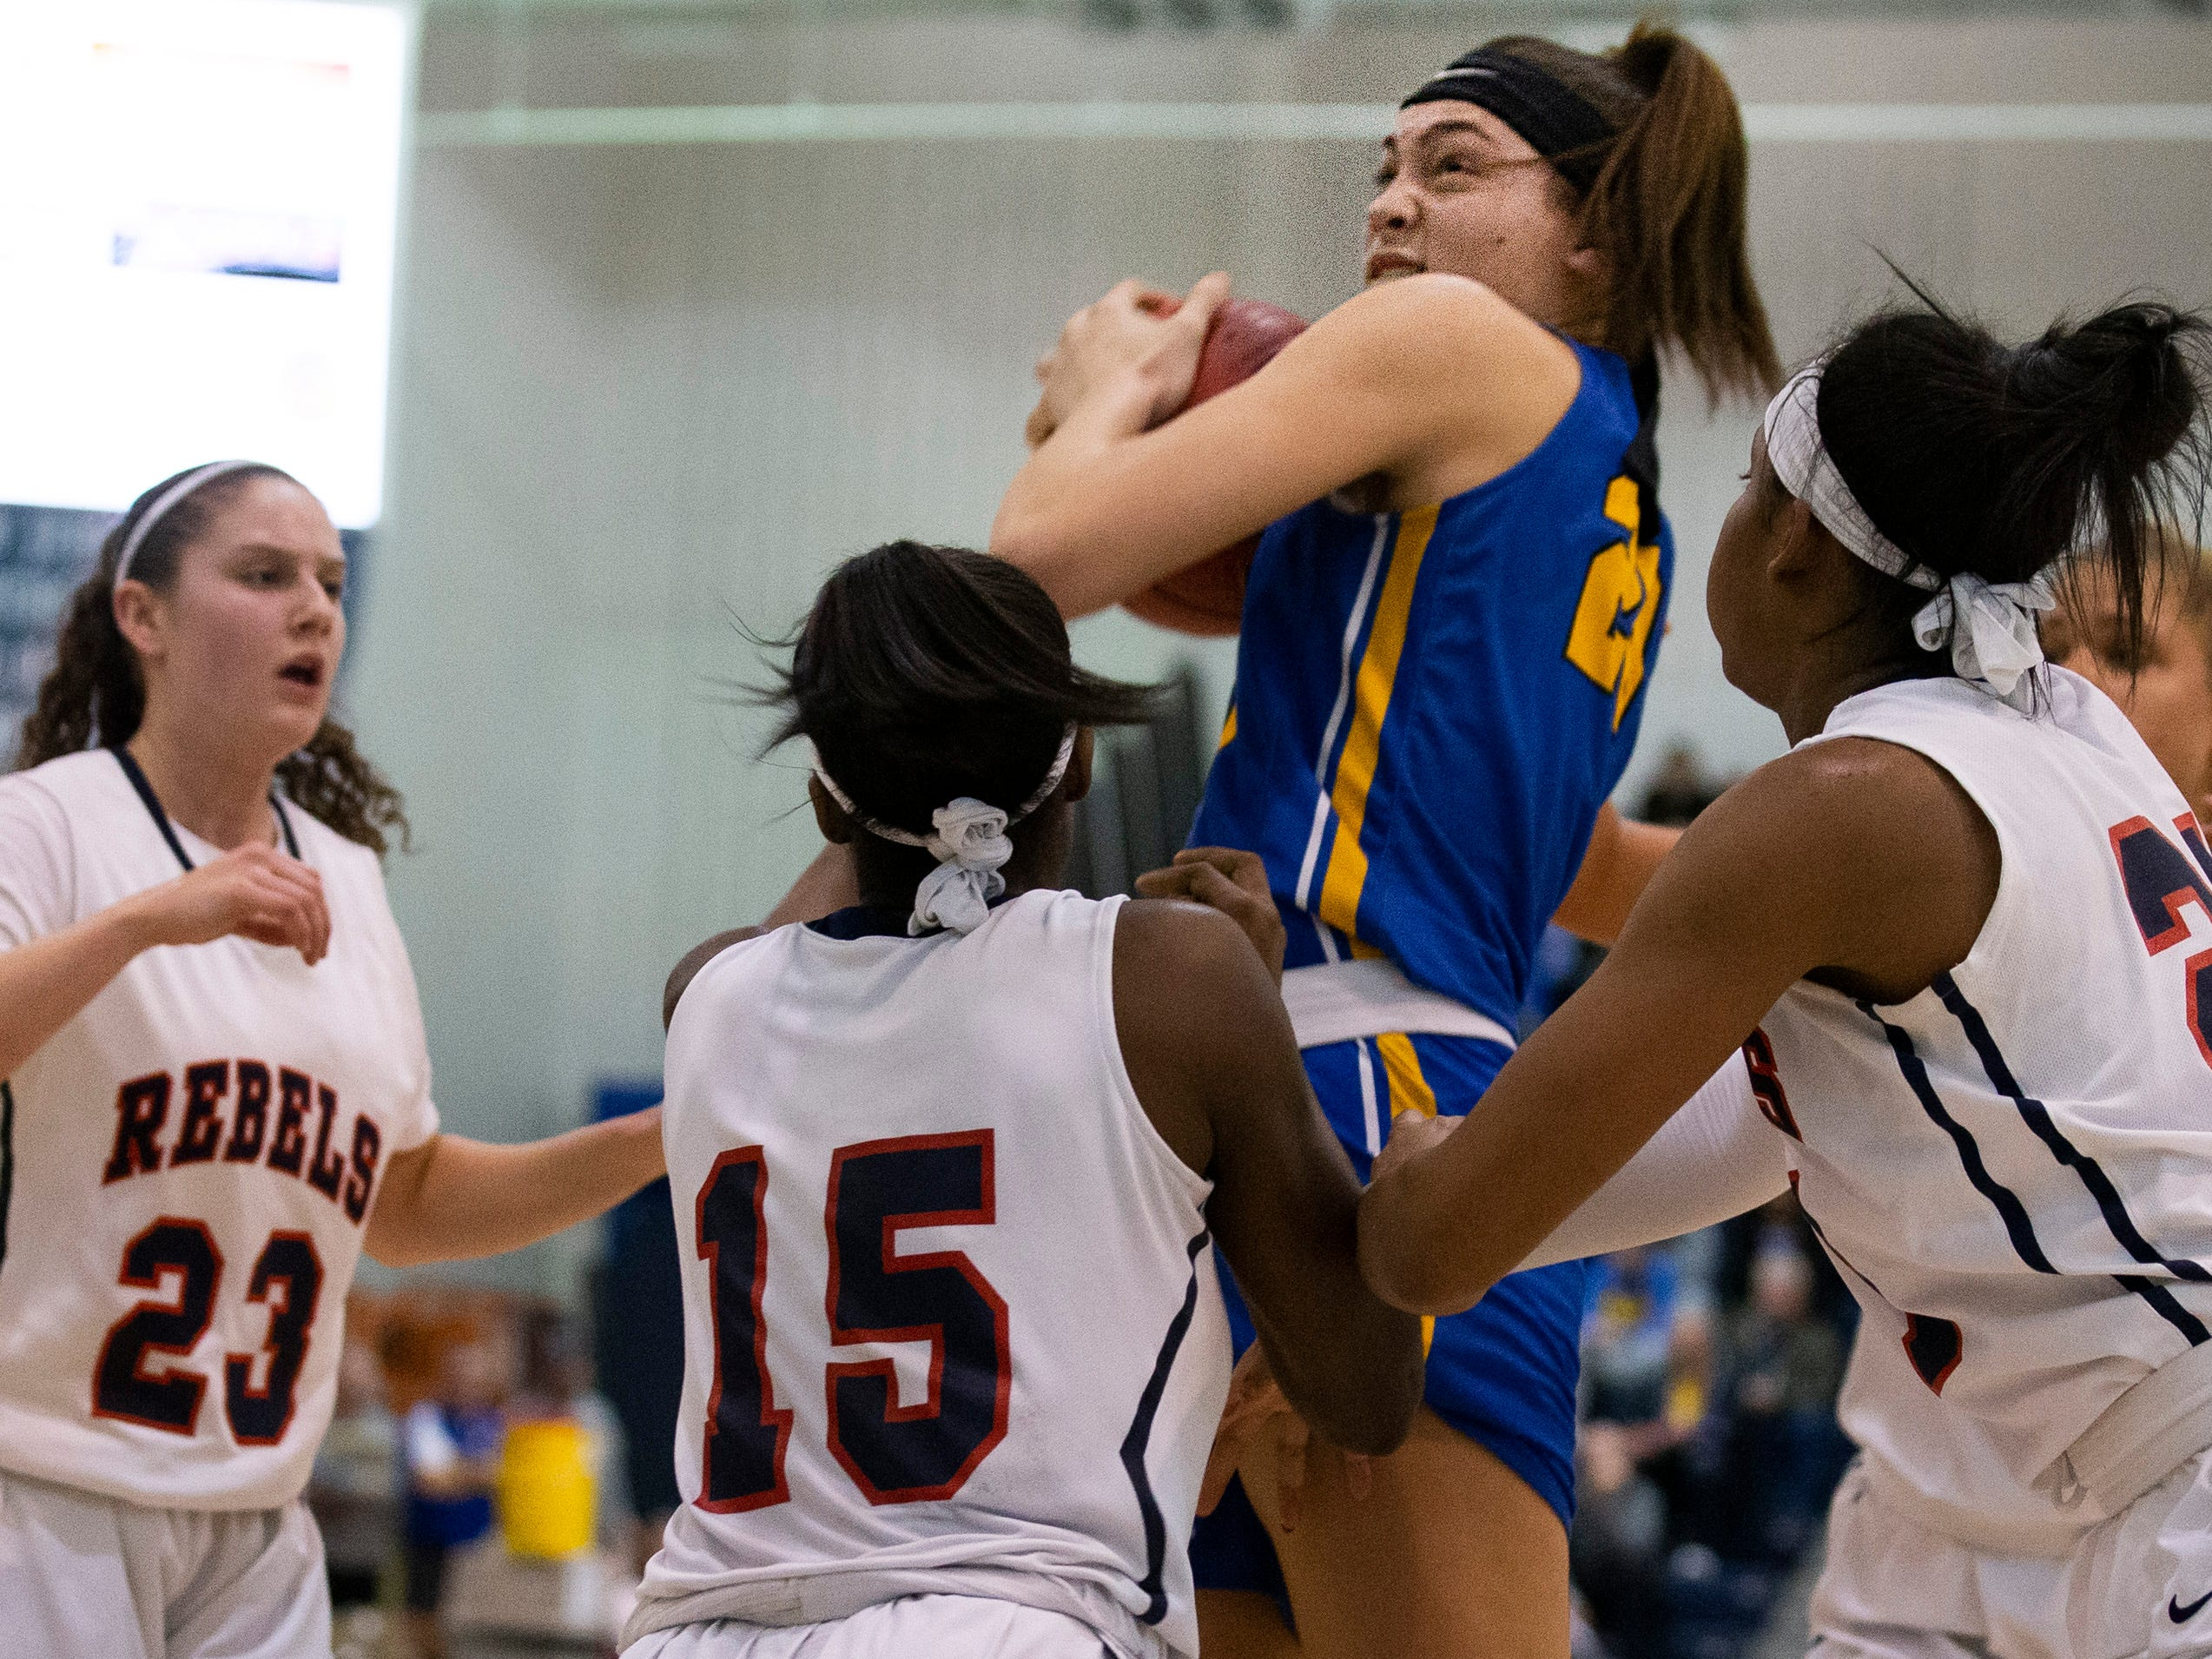 Manchester Girls Basketball vs Saddle River Day in NJSIAA Tournament of Champions Semifinal in Toms River on March 14, 2019.